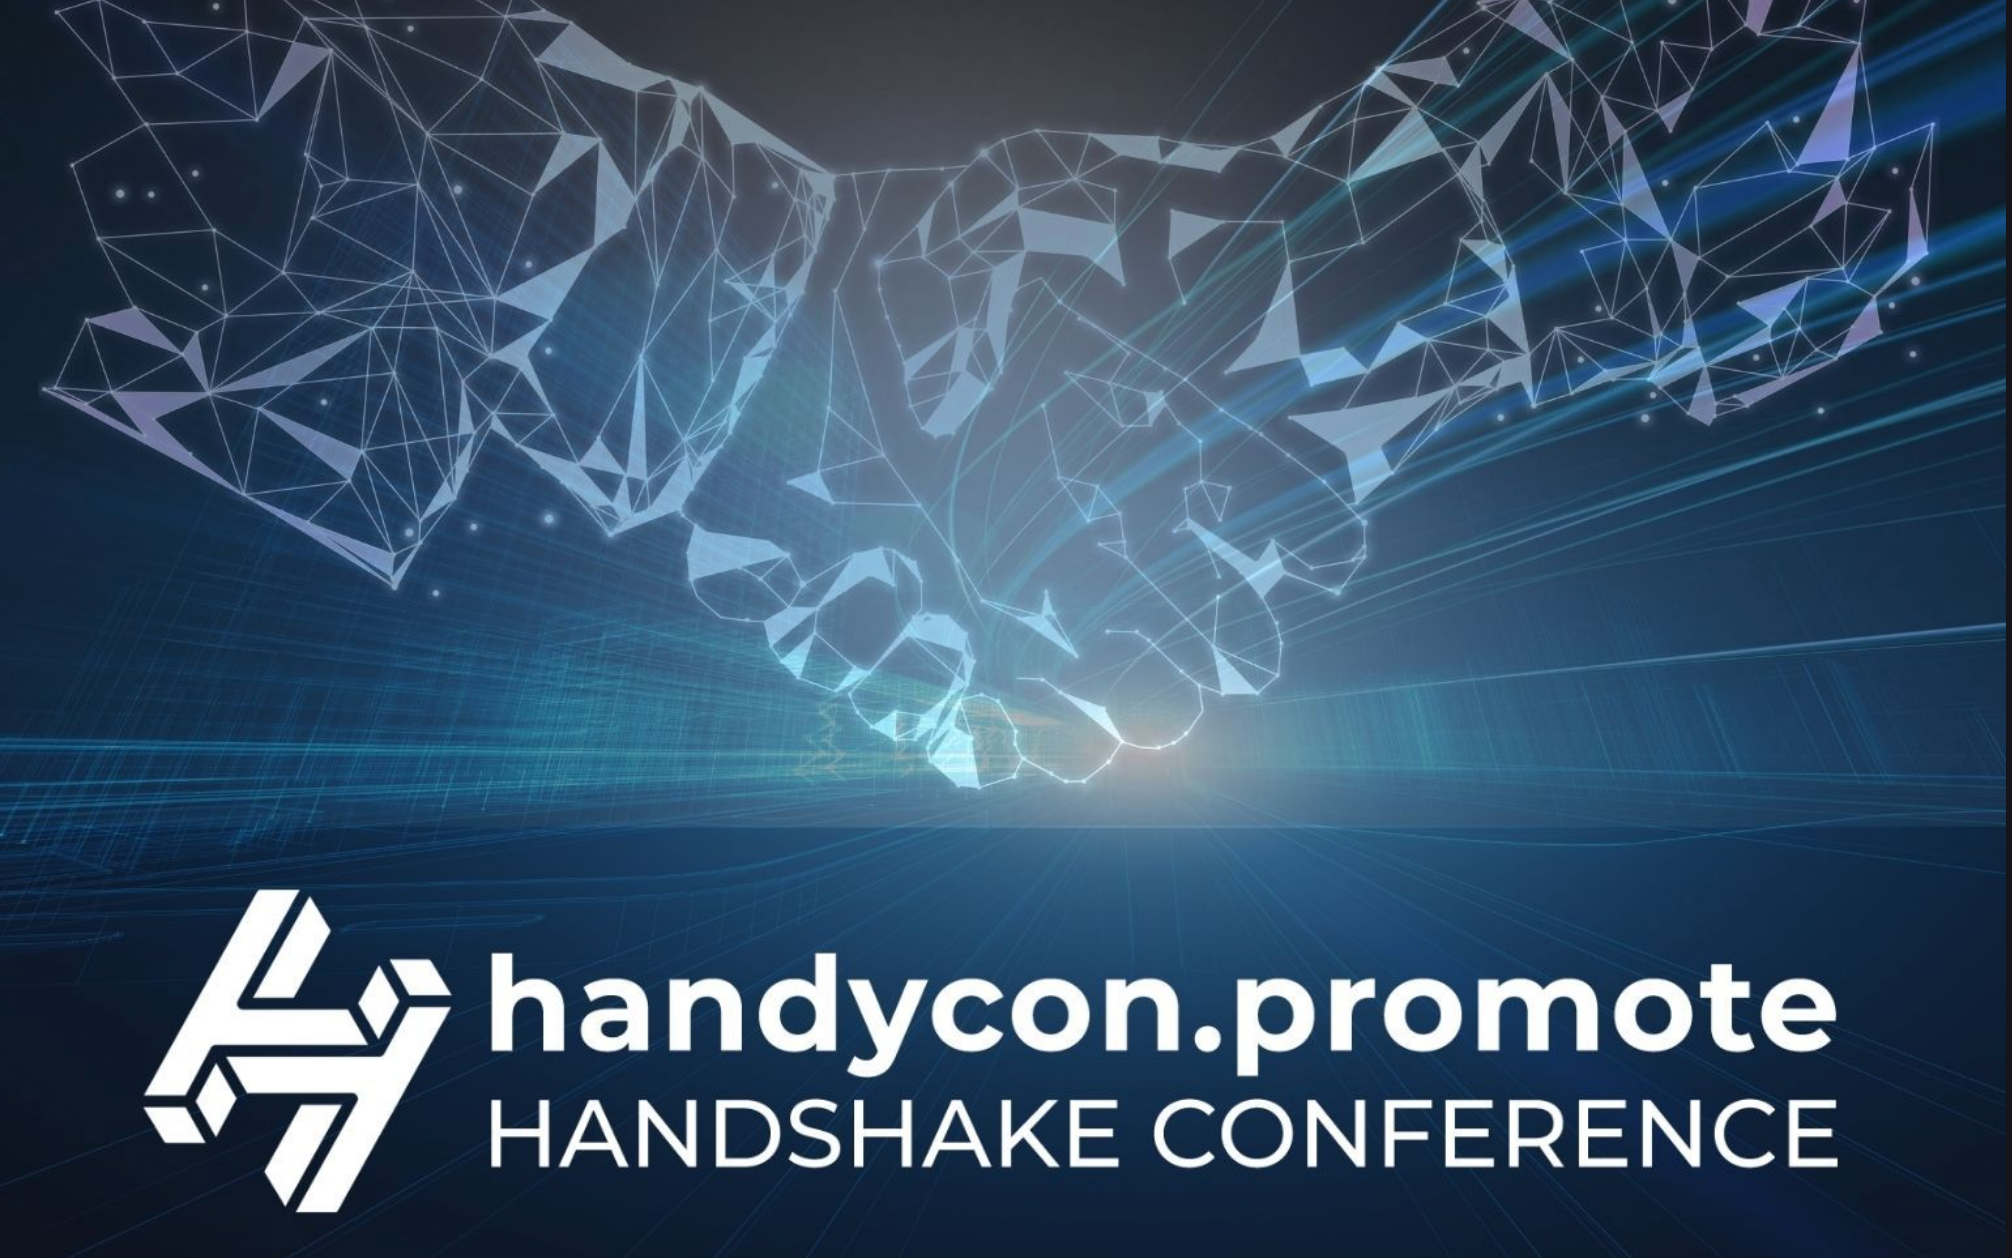 Handdy Con event img